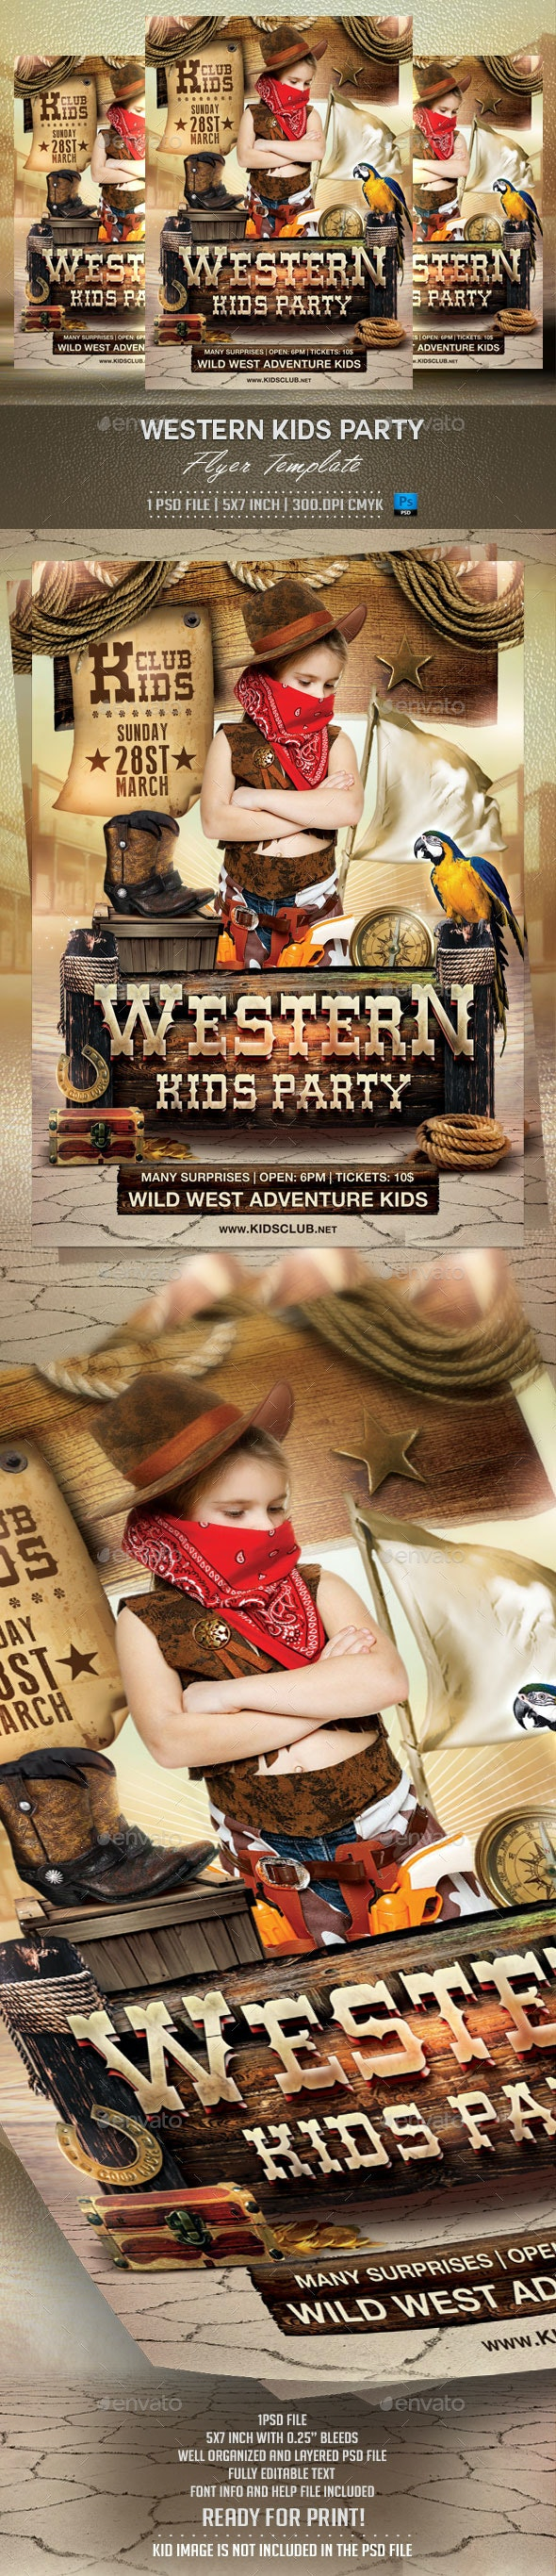 Western Kids Party Flyer Template - Events Flyers